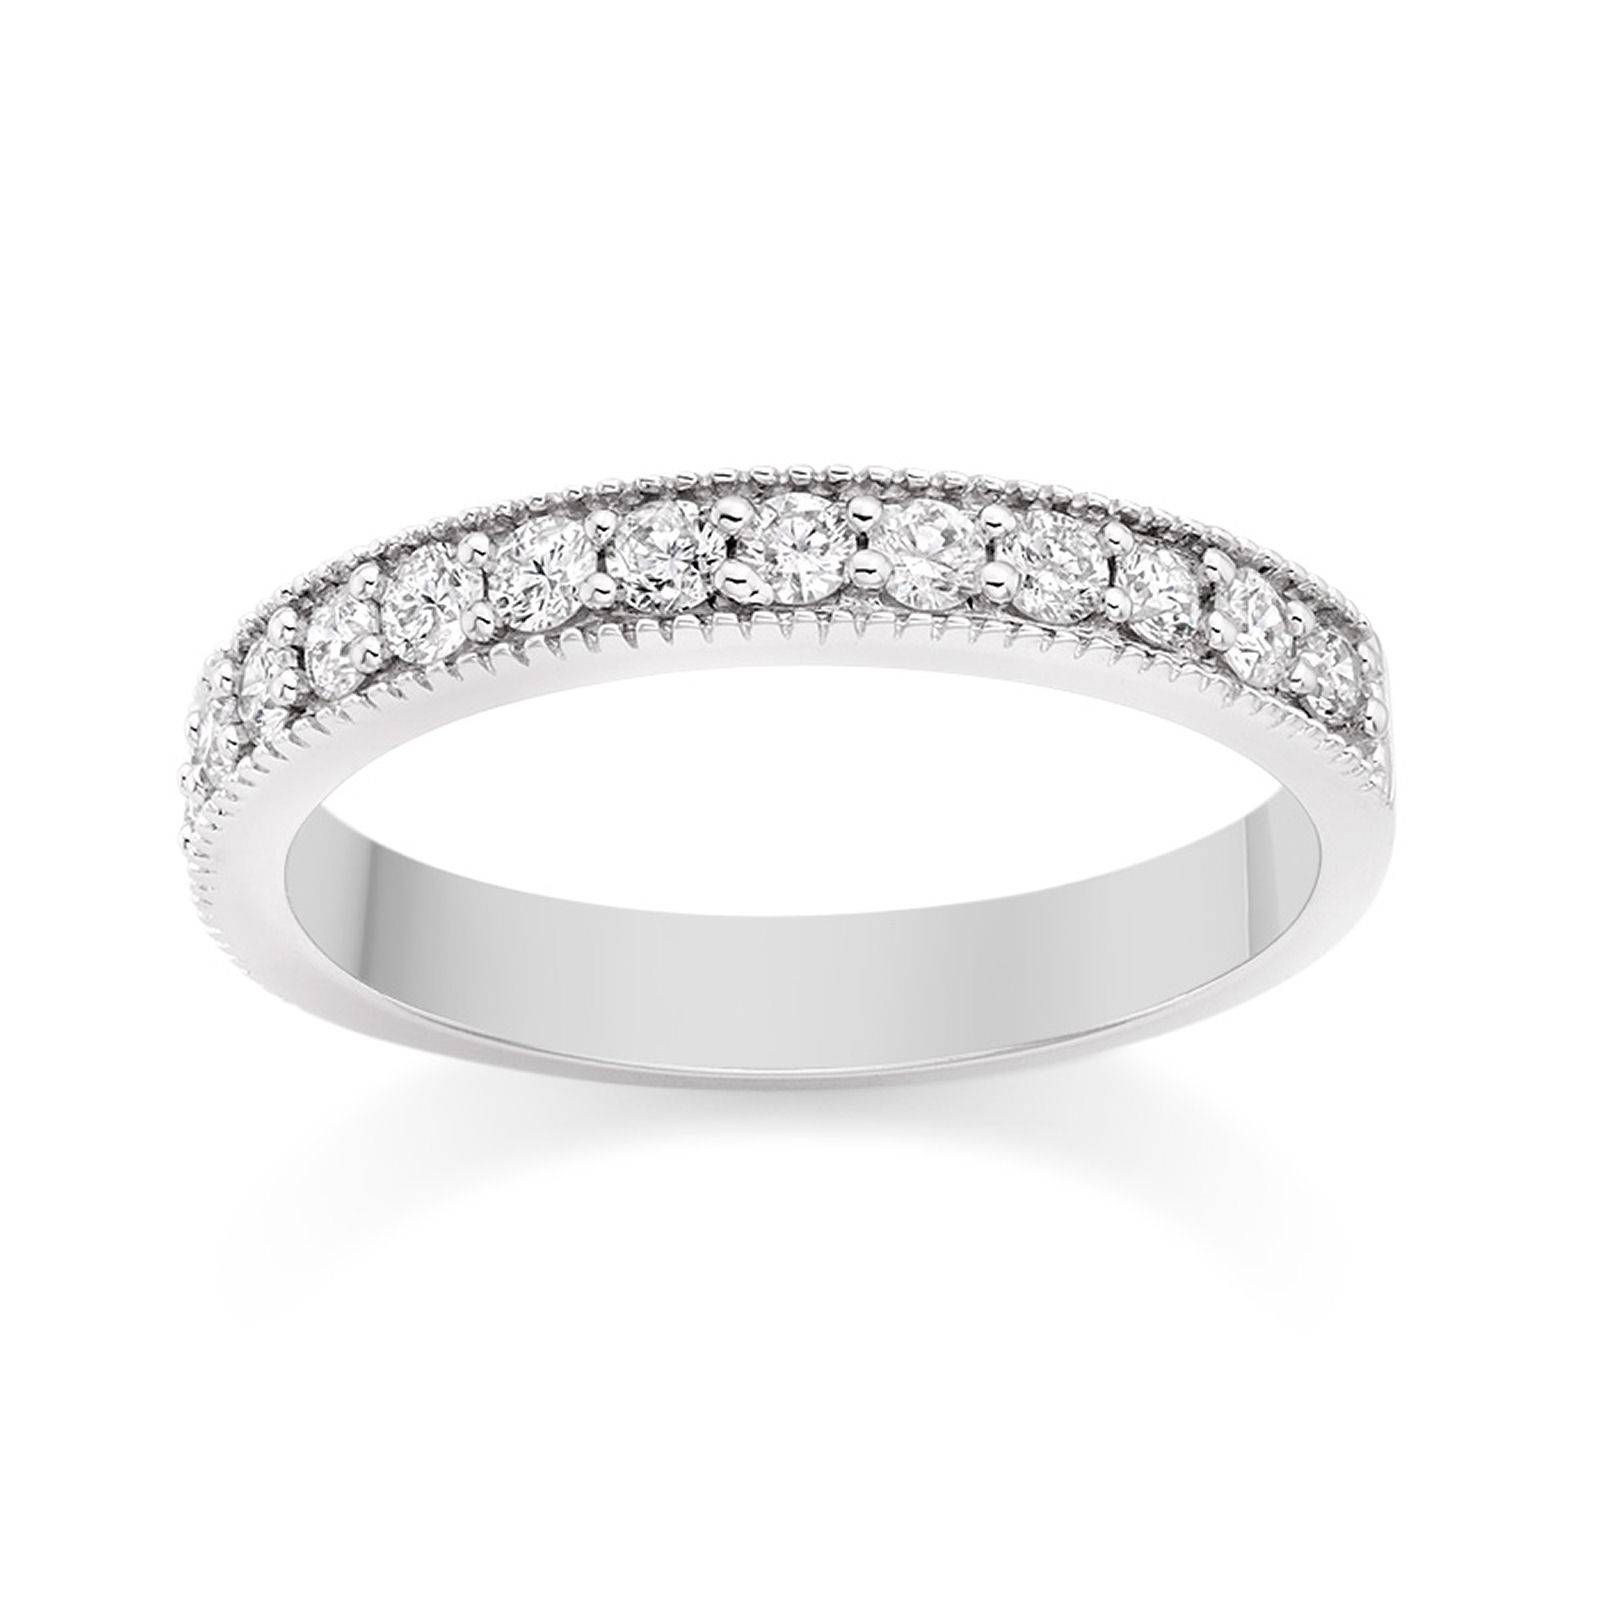 Milgrain Diamond Wedding Ring In Platinum Wedding Dress From With Regard To Platinum Diamond Wedding Rings (View 11 of 15)